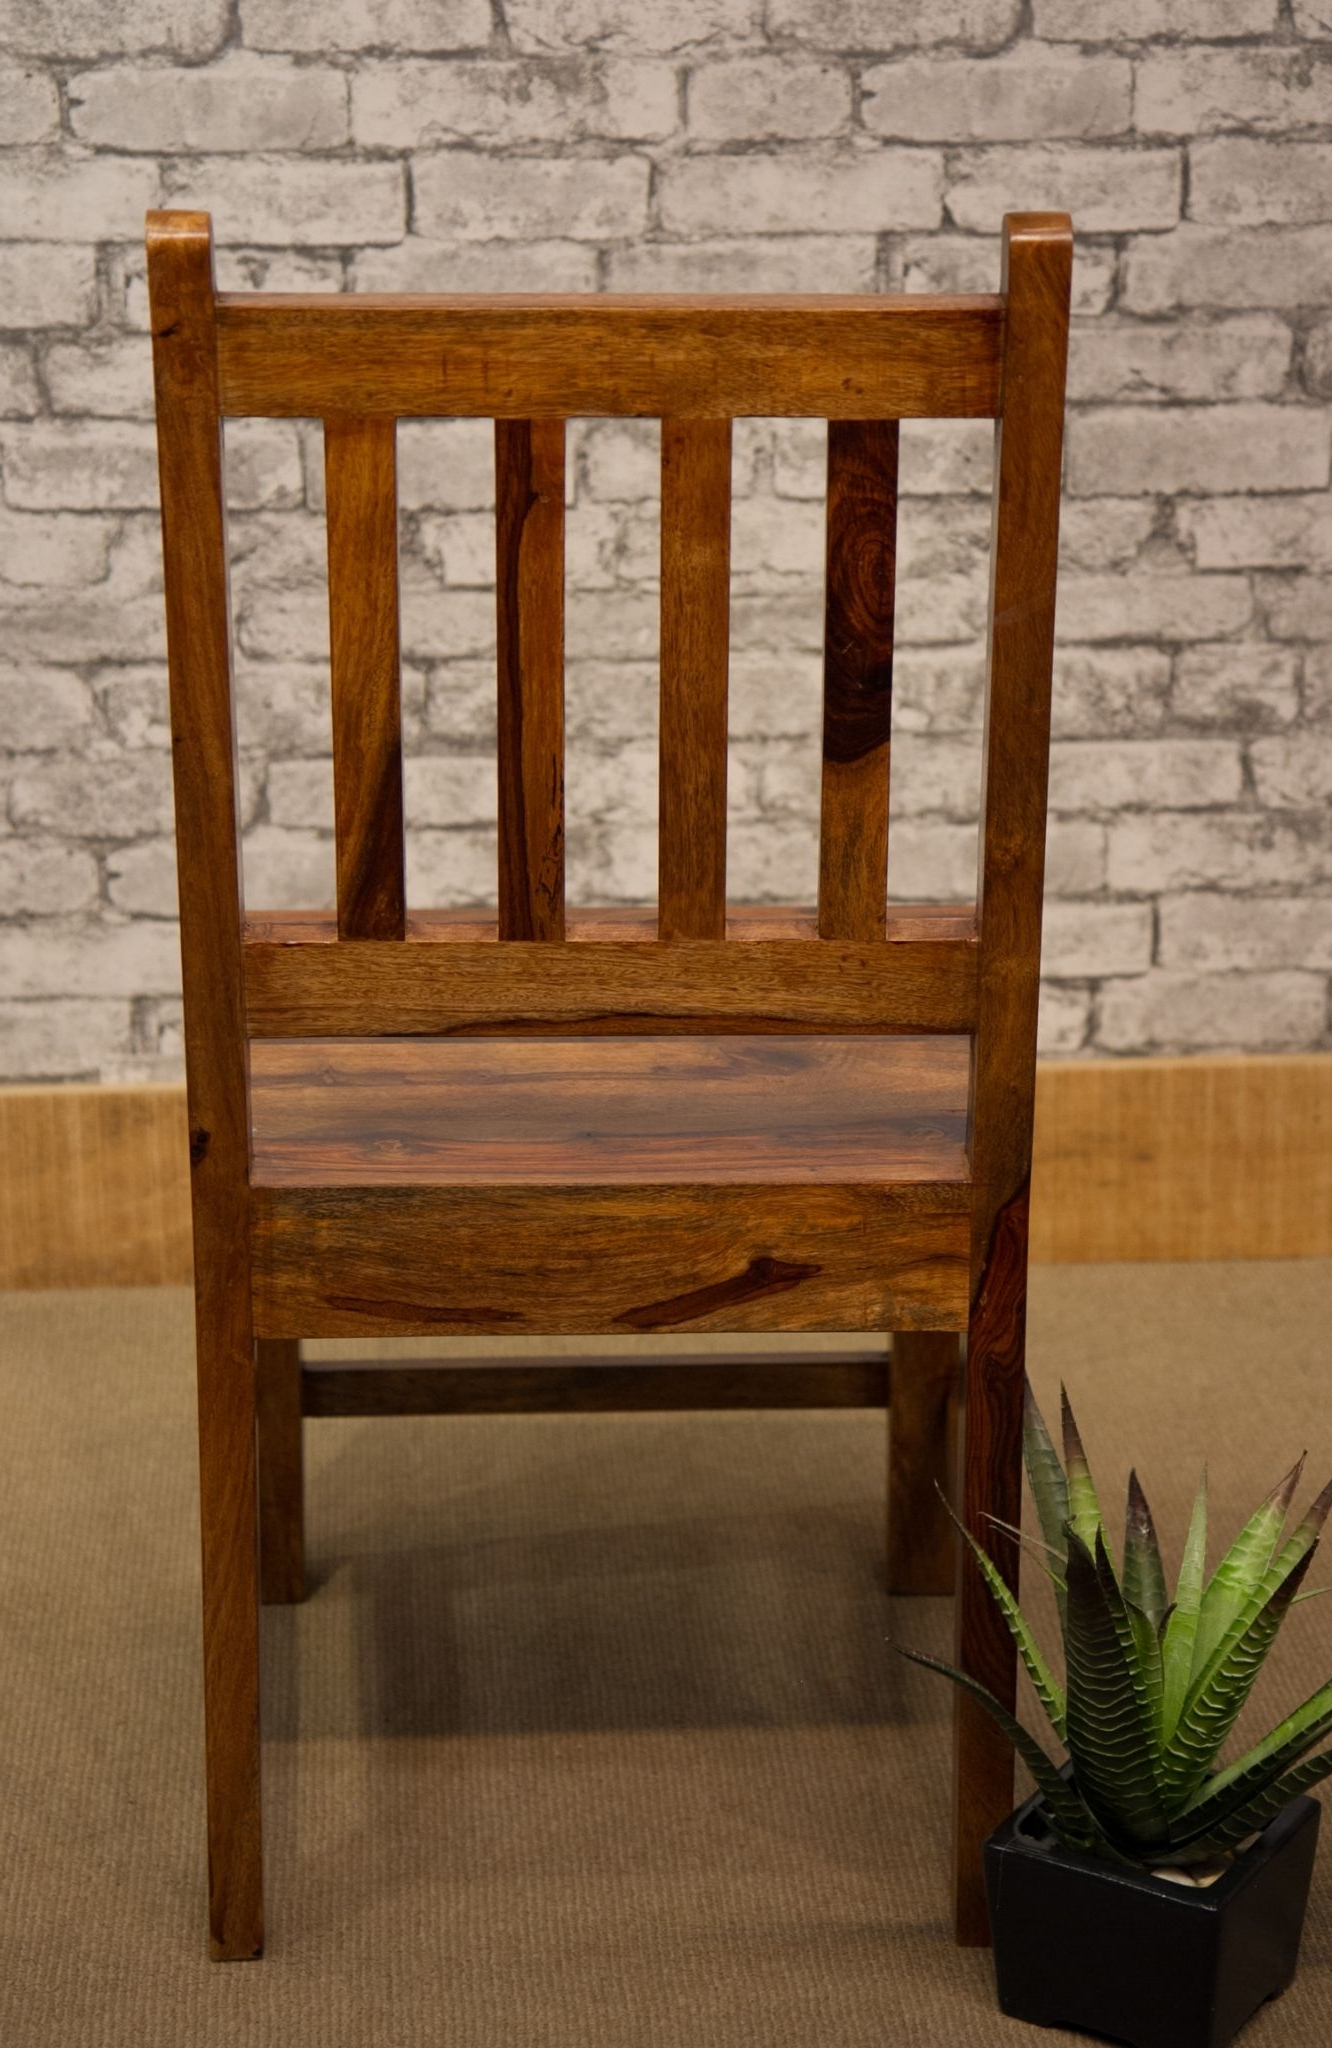 Ibf 049 Low Slat Back Sheesham Dining Chair Inside Most Recently Released Sheesham Dining Chairs (View 10 of 25)